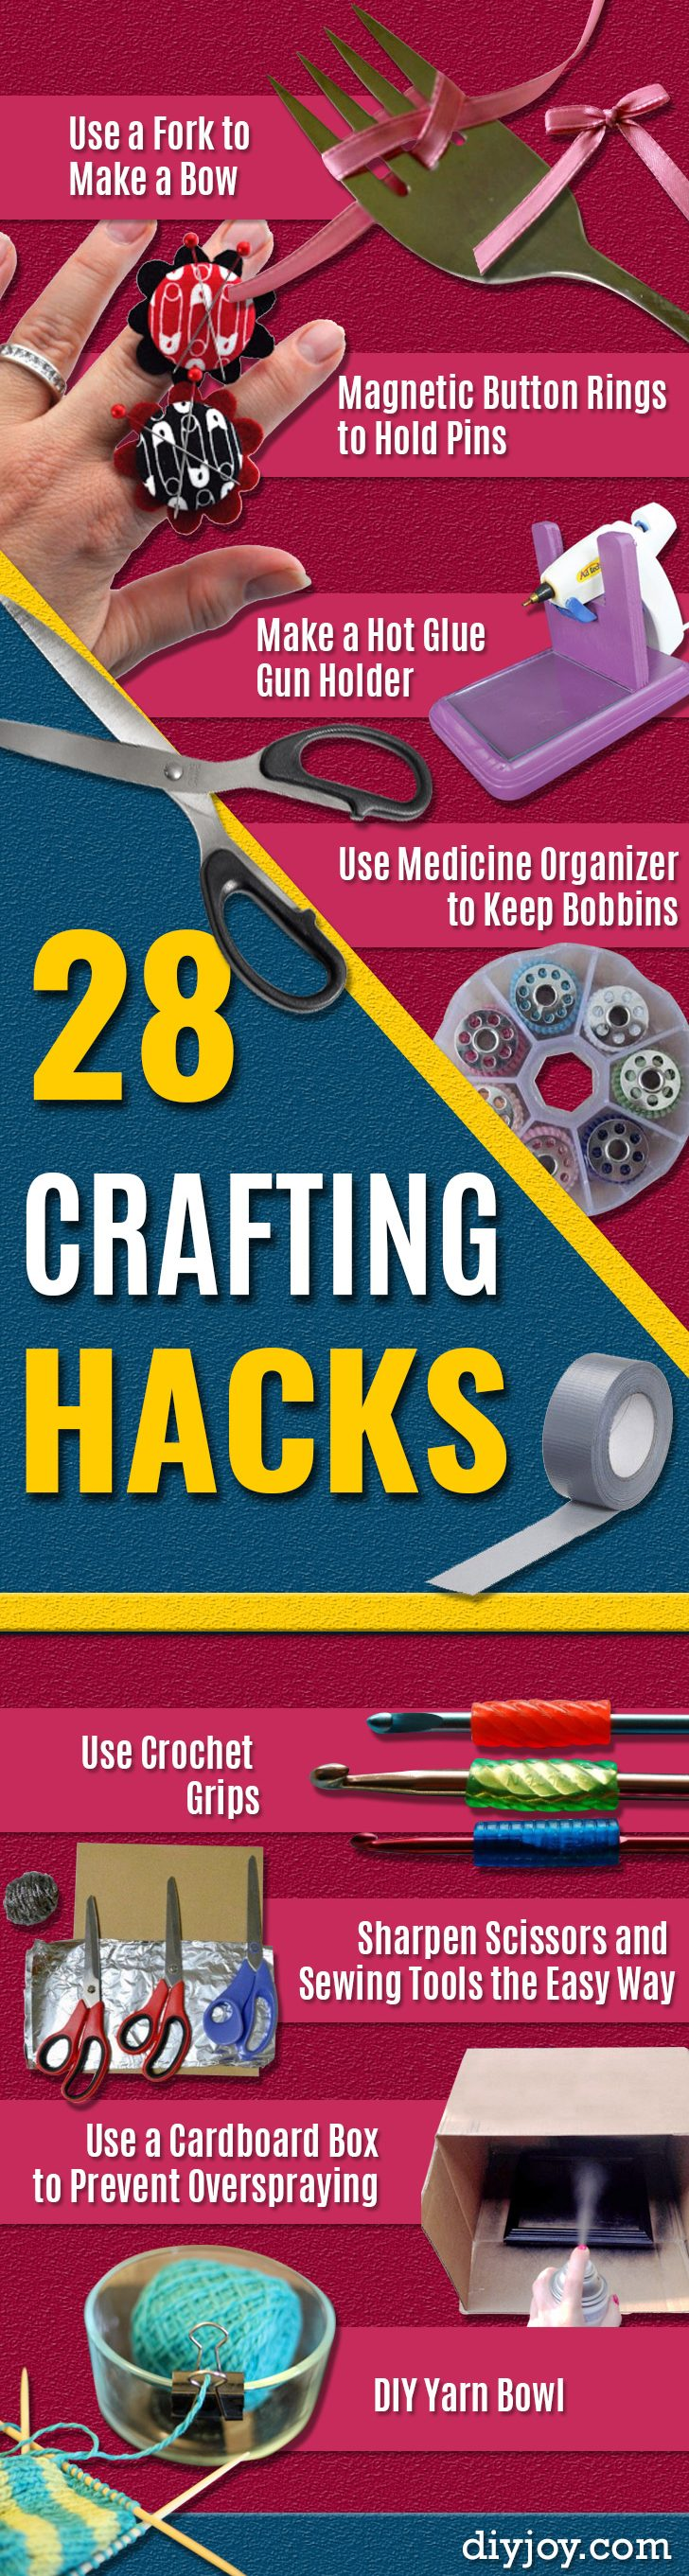 DIY Crafting Hacks - Easy Crafting Ideas for Quick DIY Projects - Awesome Creative, Crafty Ways for Dollar Store, Organizing, Yarn, Scissors and Pom Poms